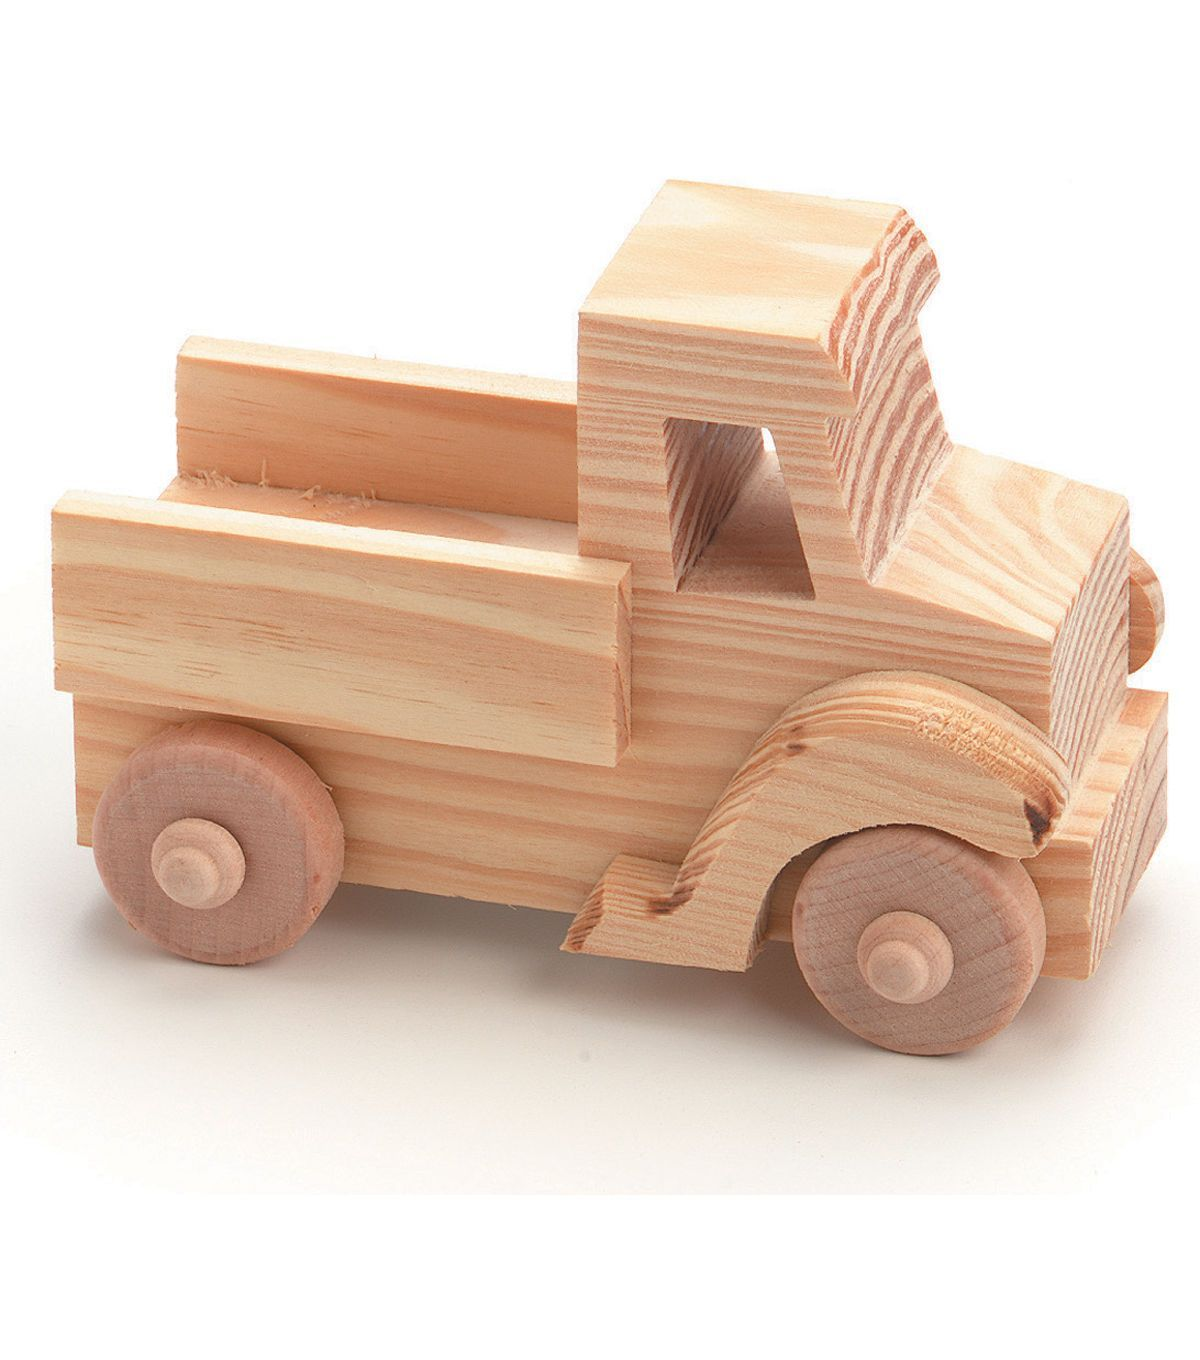 truck - wood toy | products | wooden toy trucks, wooden